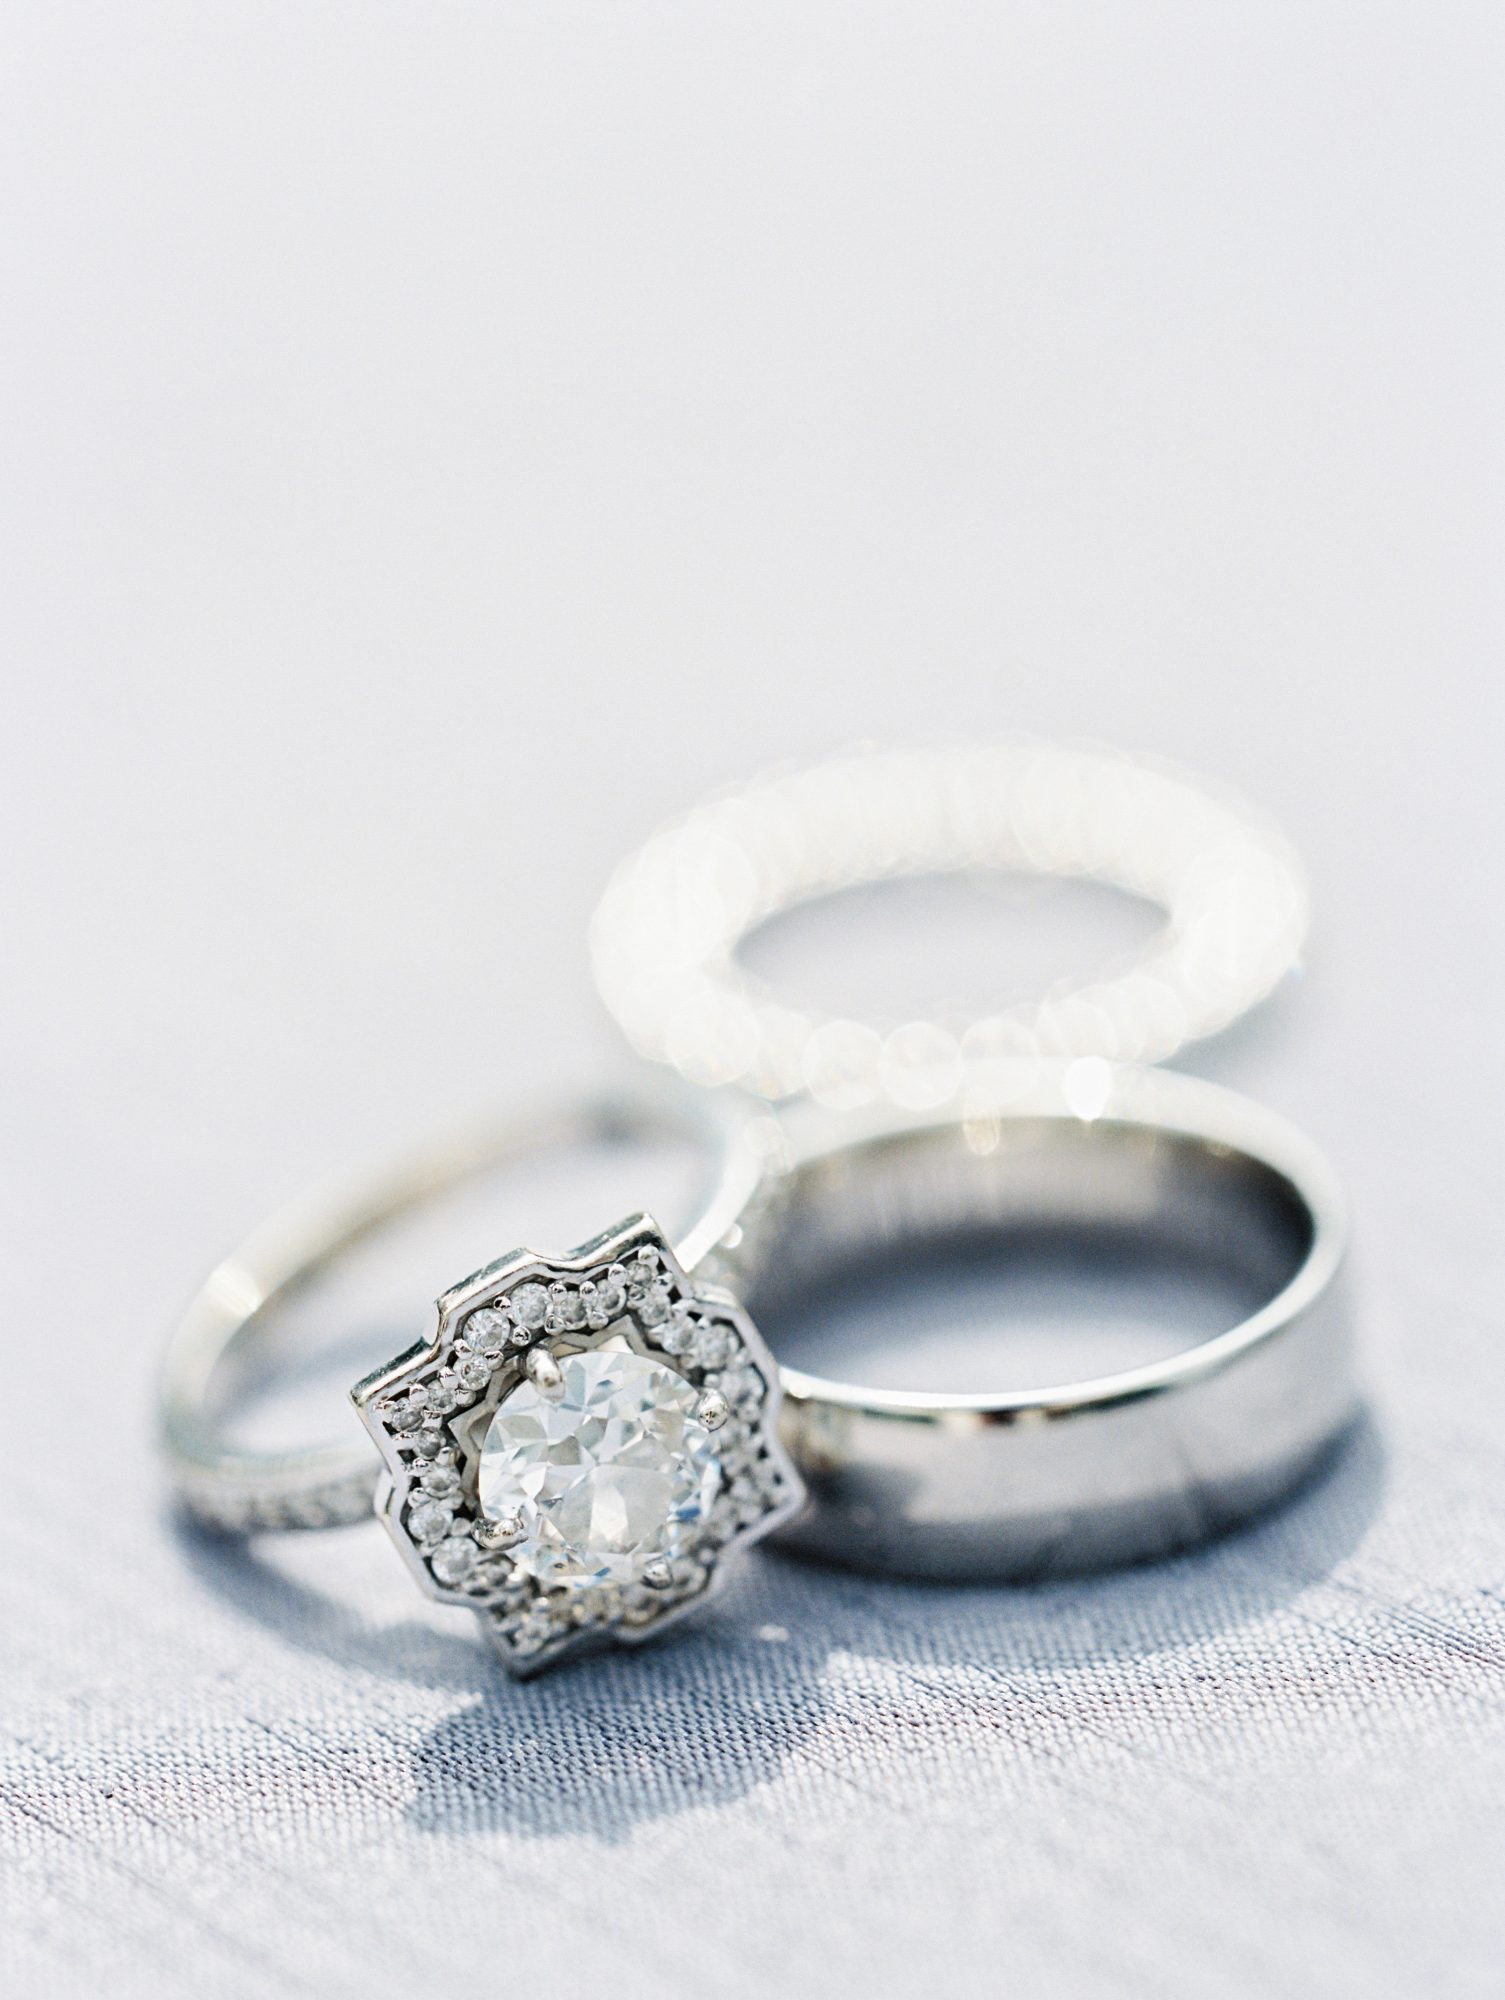 samantha michael wedding rings